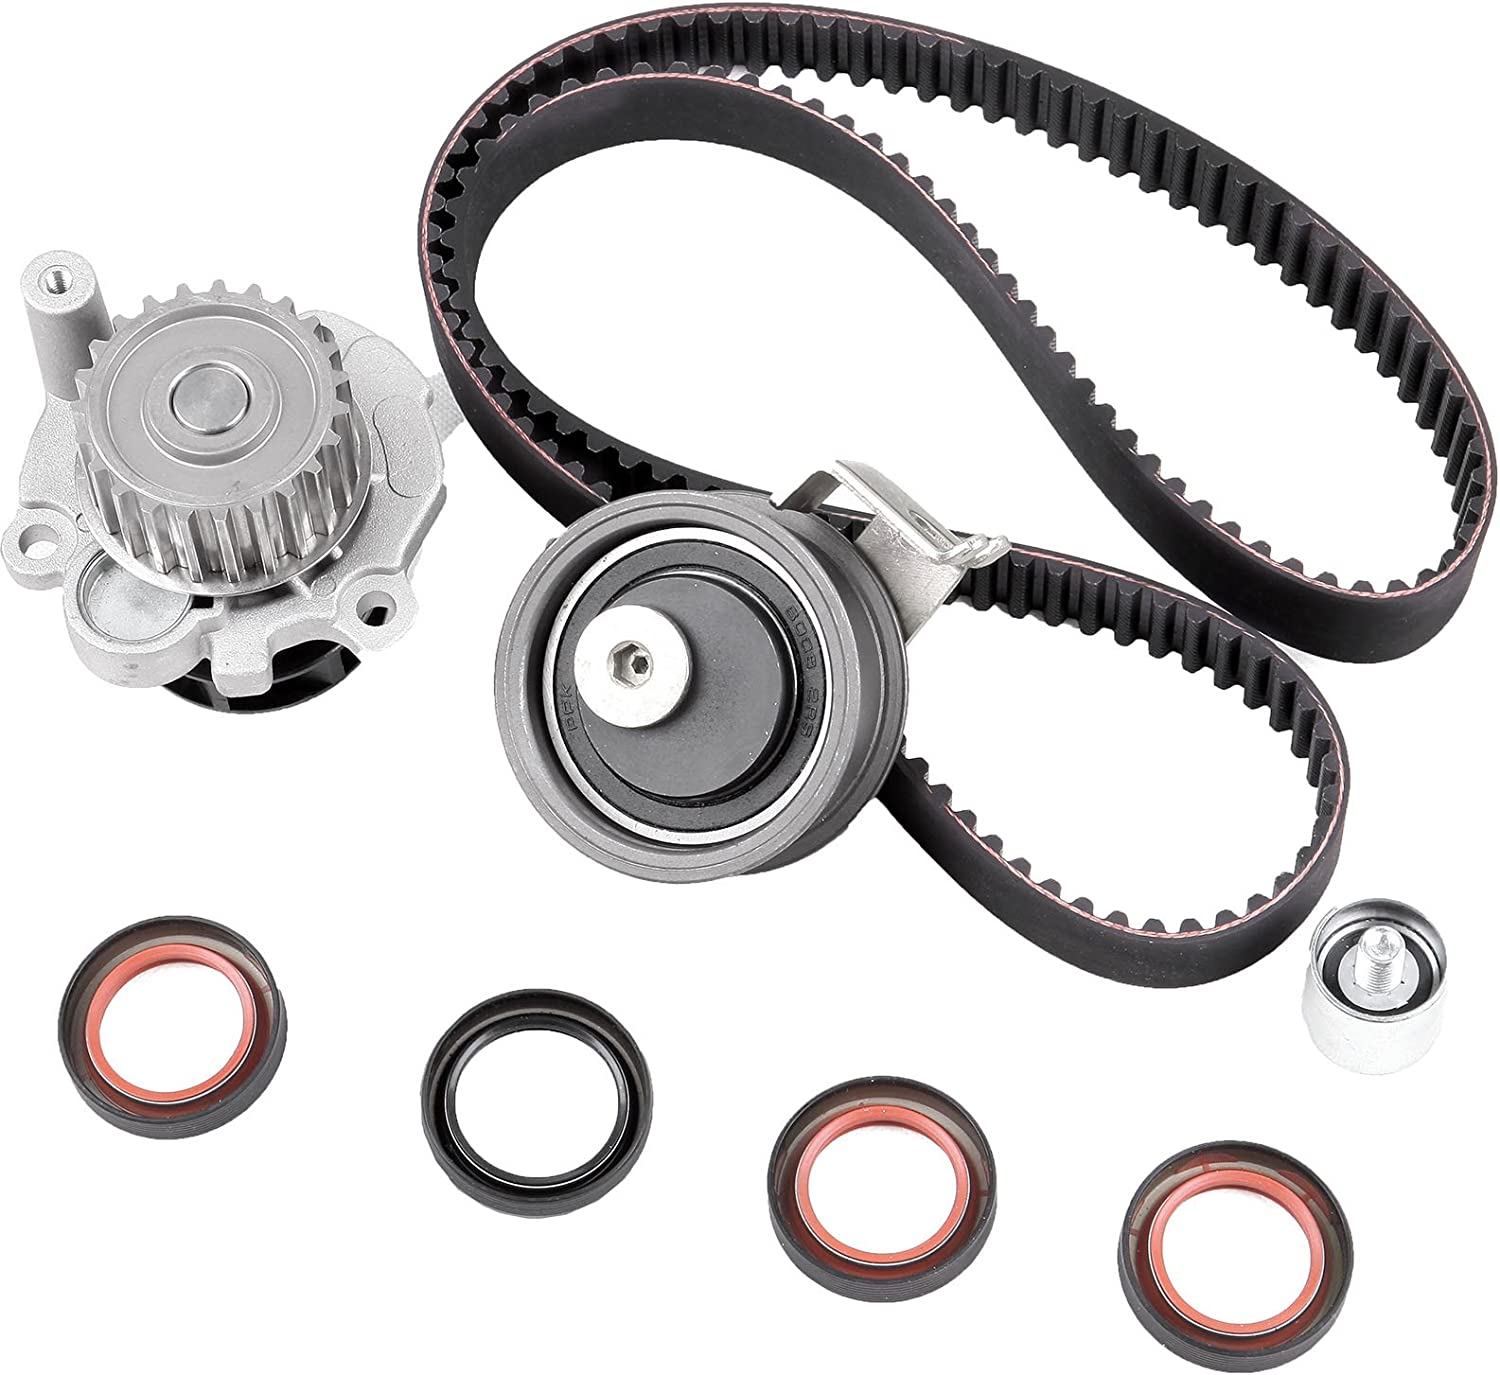 Online Automotive TBWPPG30816D 3001 Timing Belt Kit with Water Pump